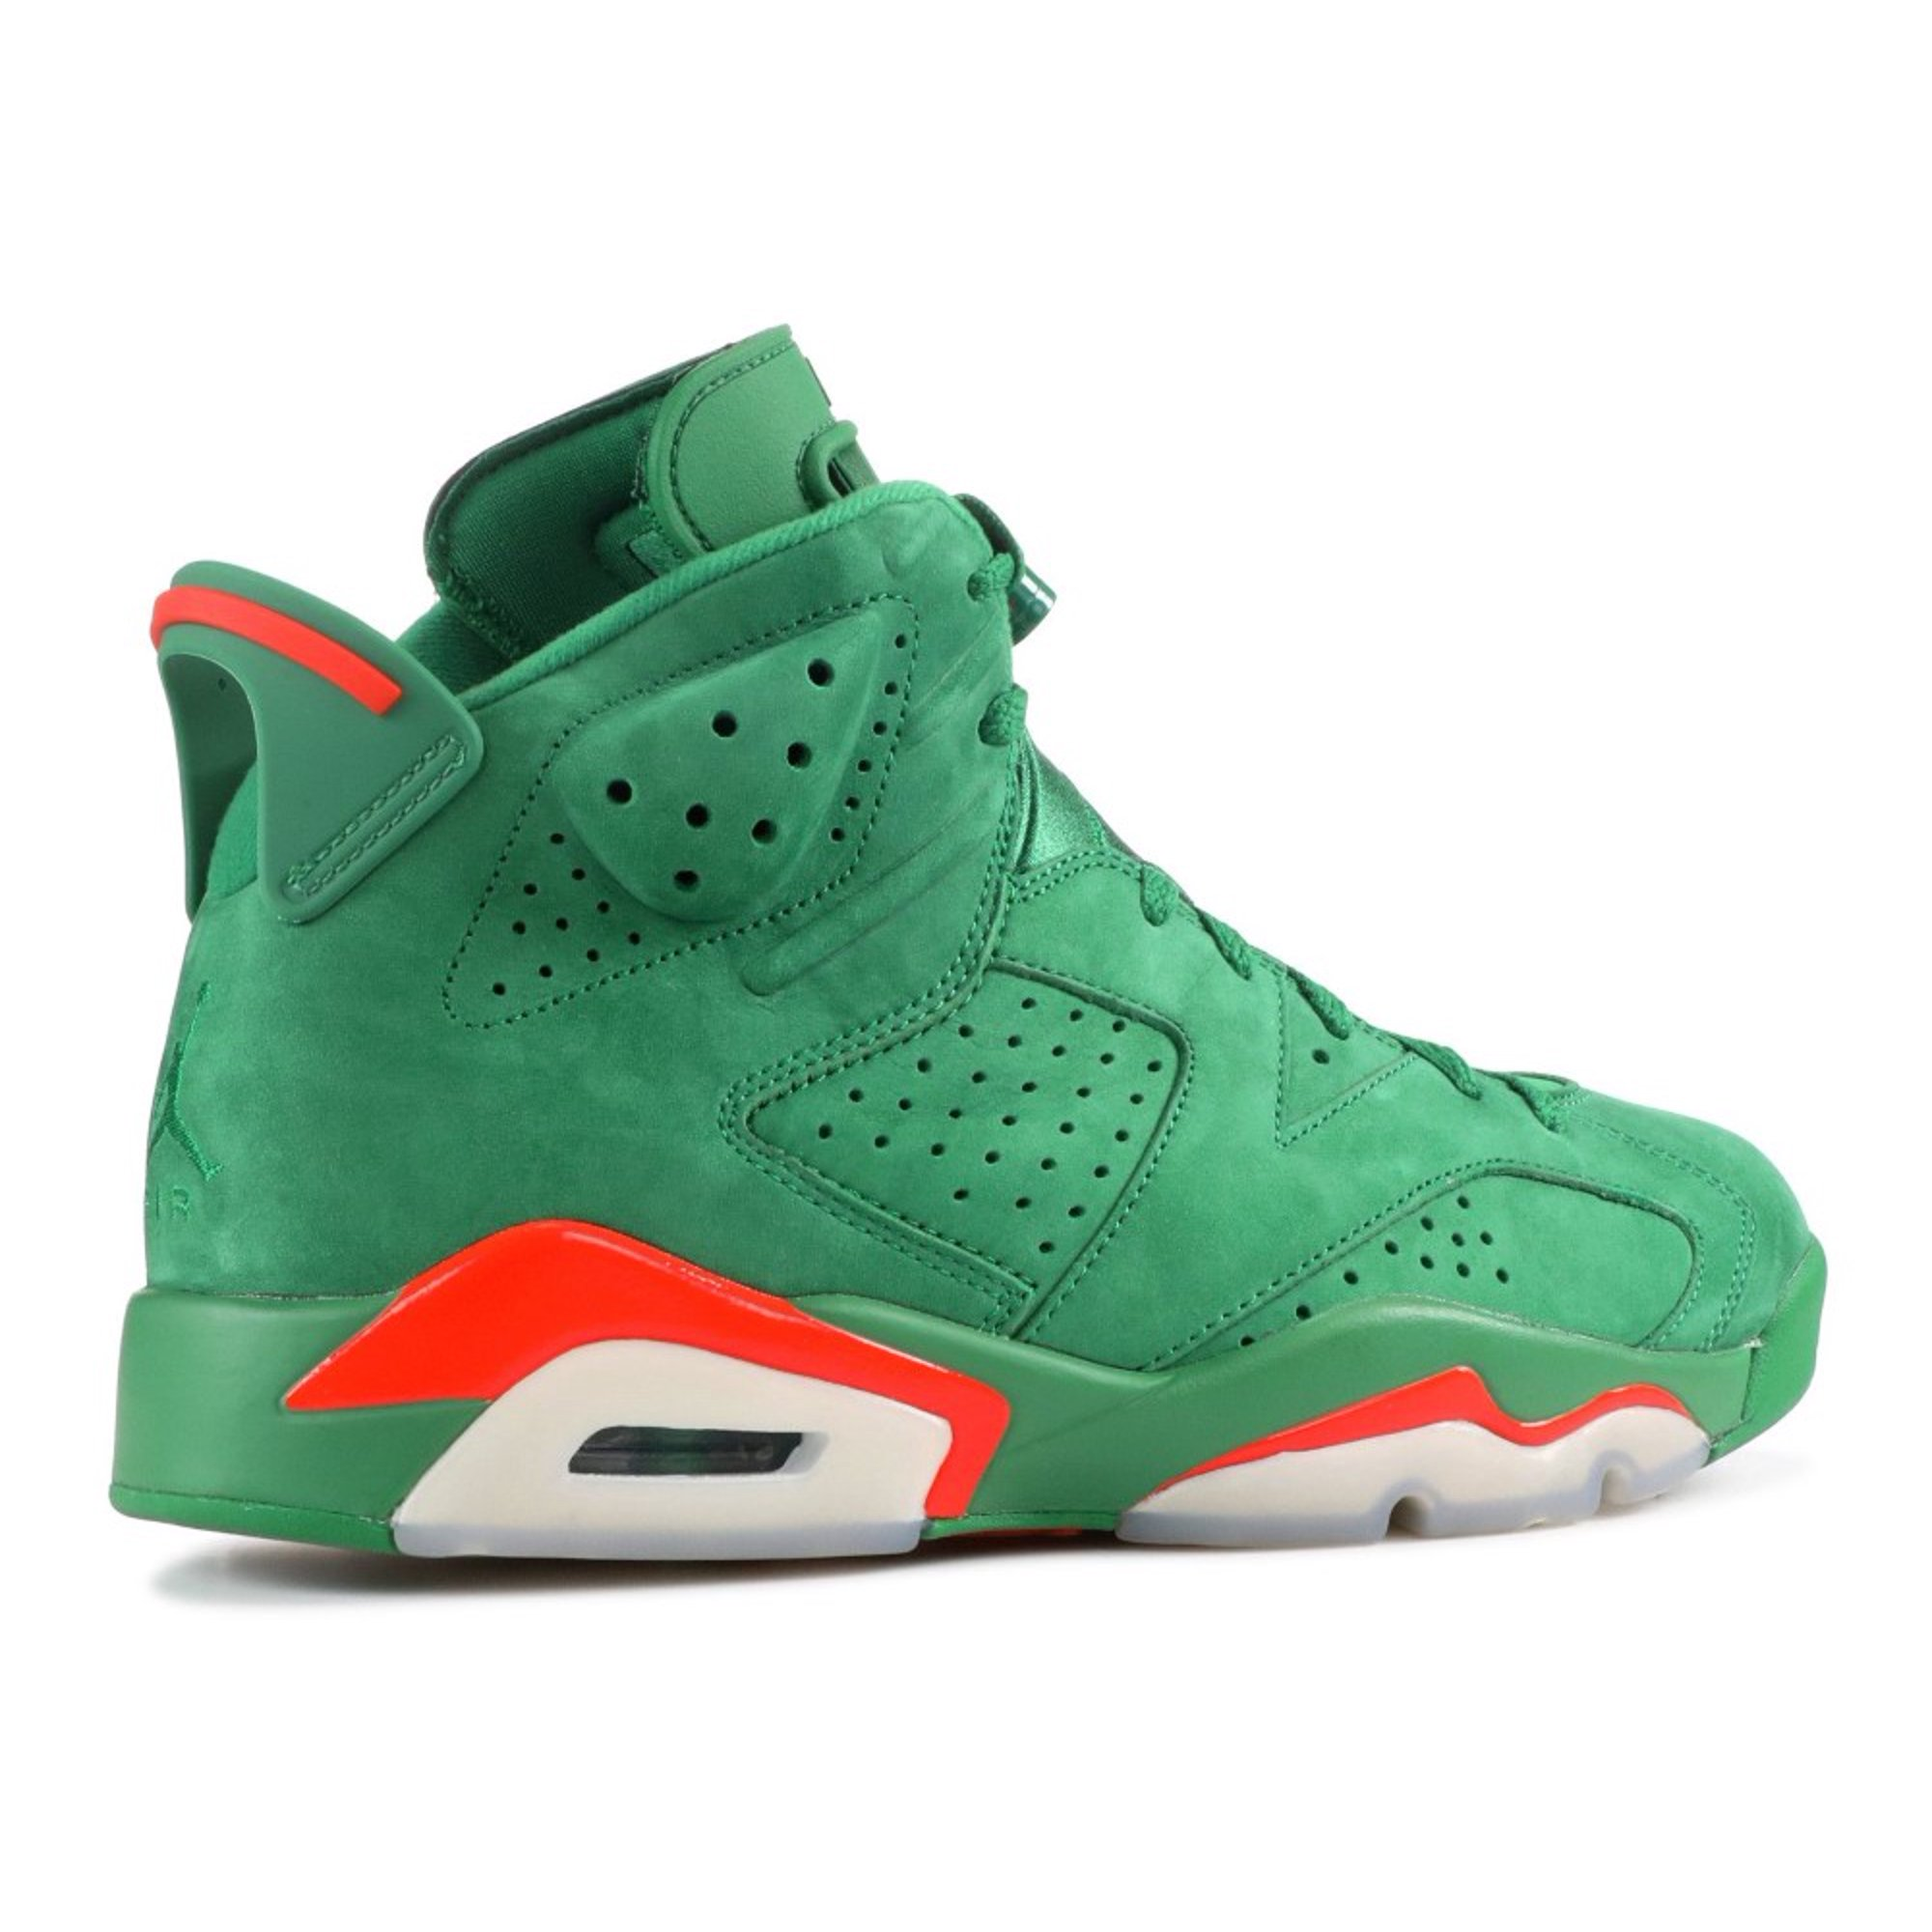 e8e8374b074 Air Jordan - Men - Air Jordan 6 Retro Nrg G8rd  Gatorade Green  -  Aj5986-335 - Size 11.5